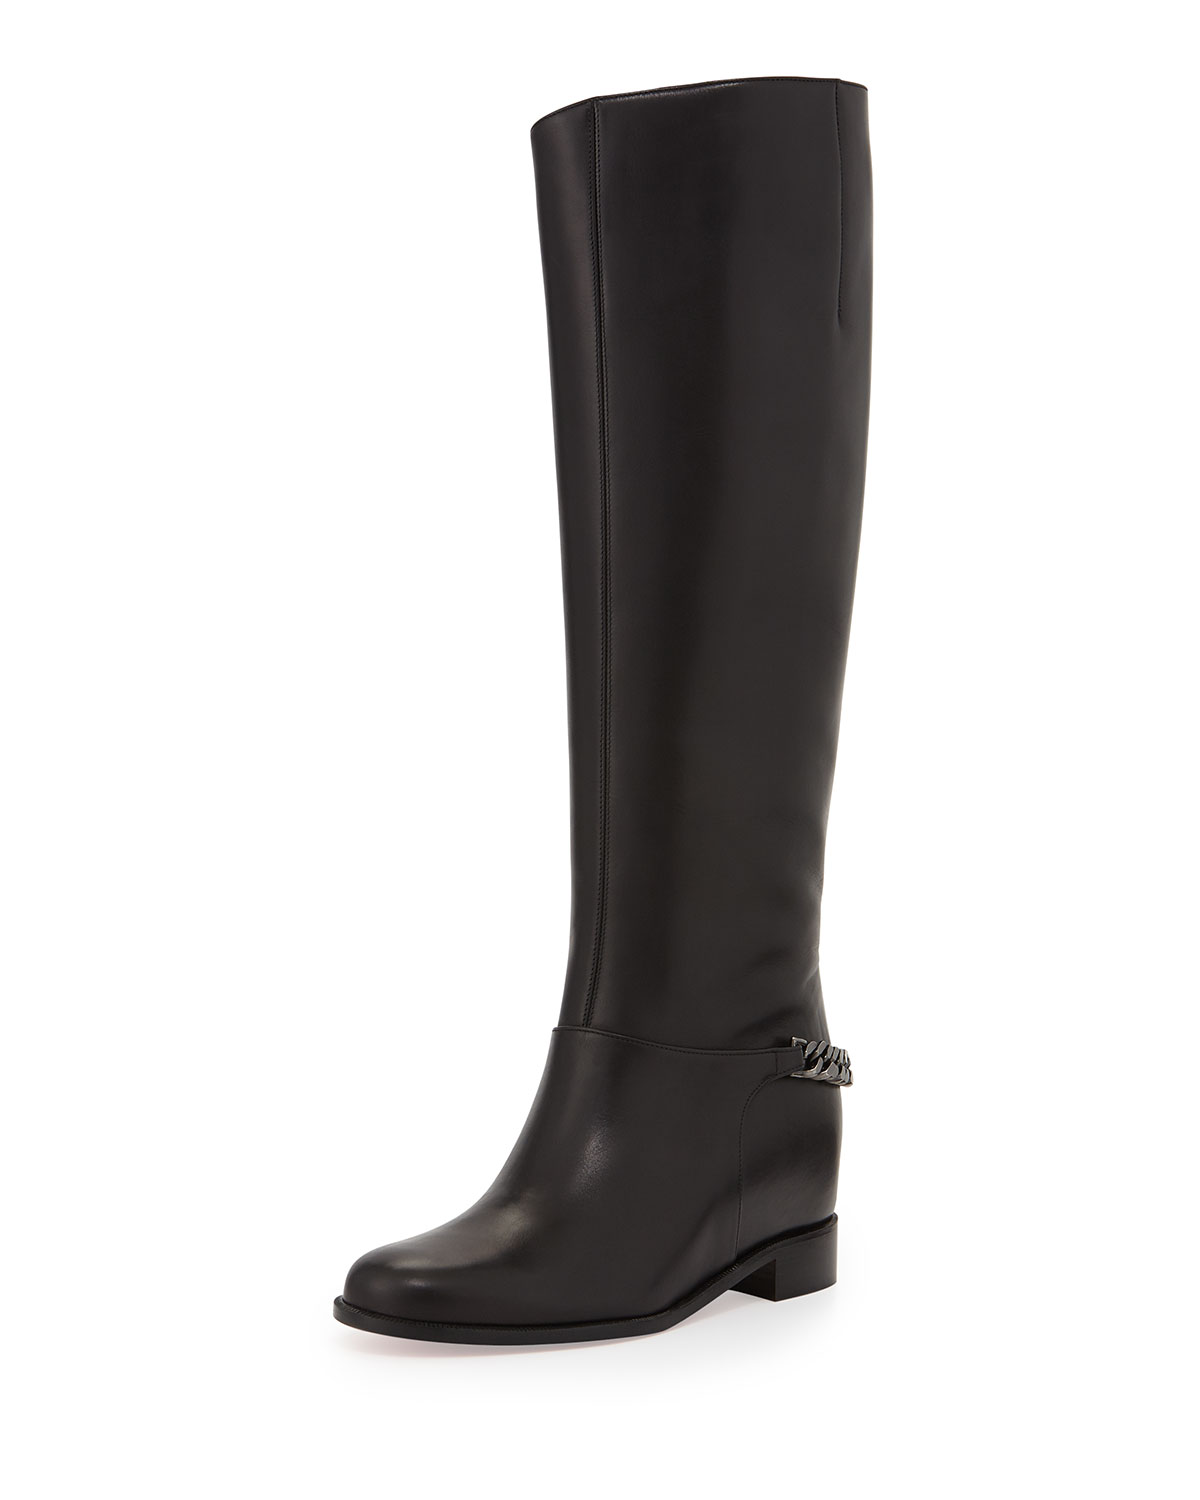 3f55142eda1 Cate Chain-Trim Red Sole Knee Boot